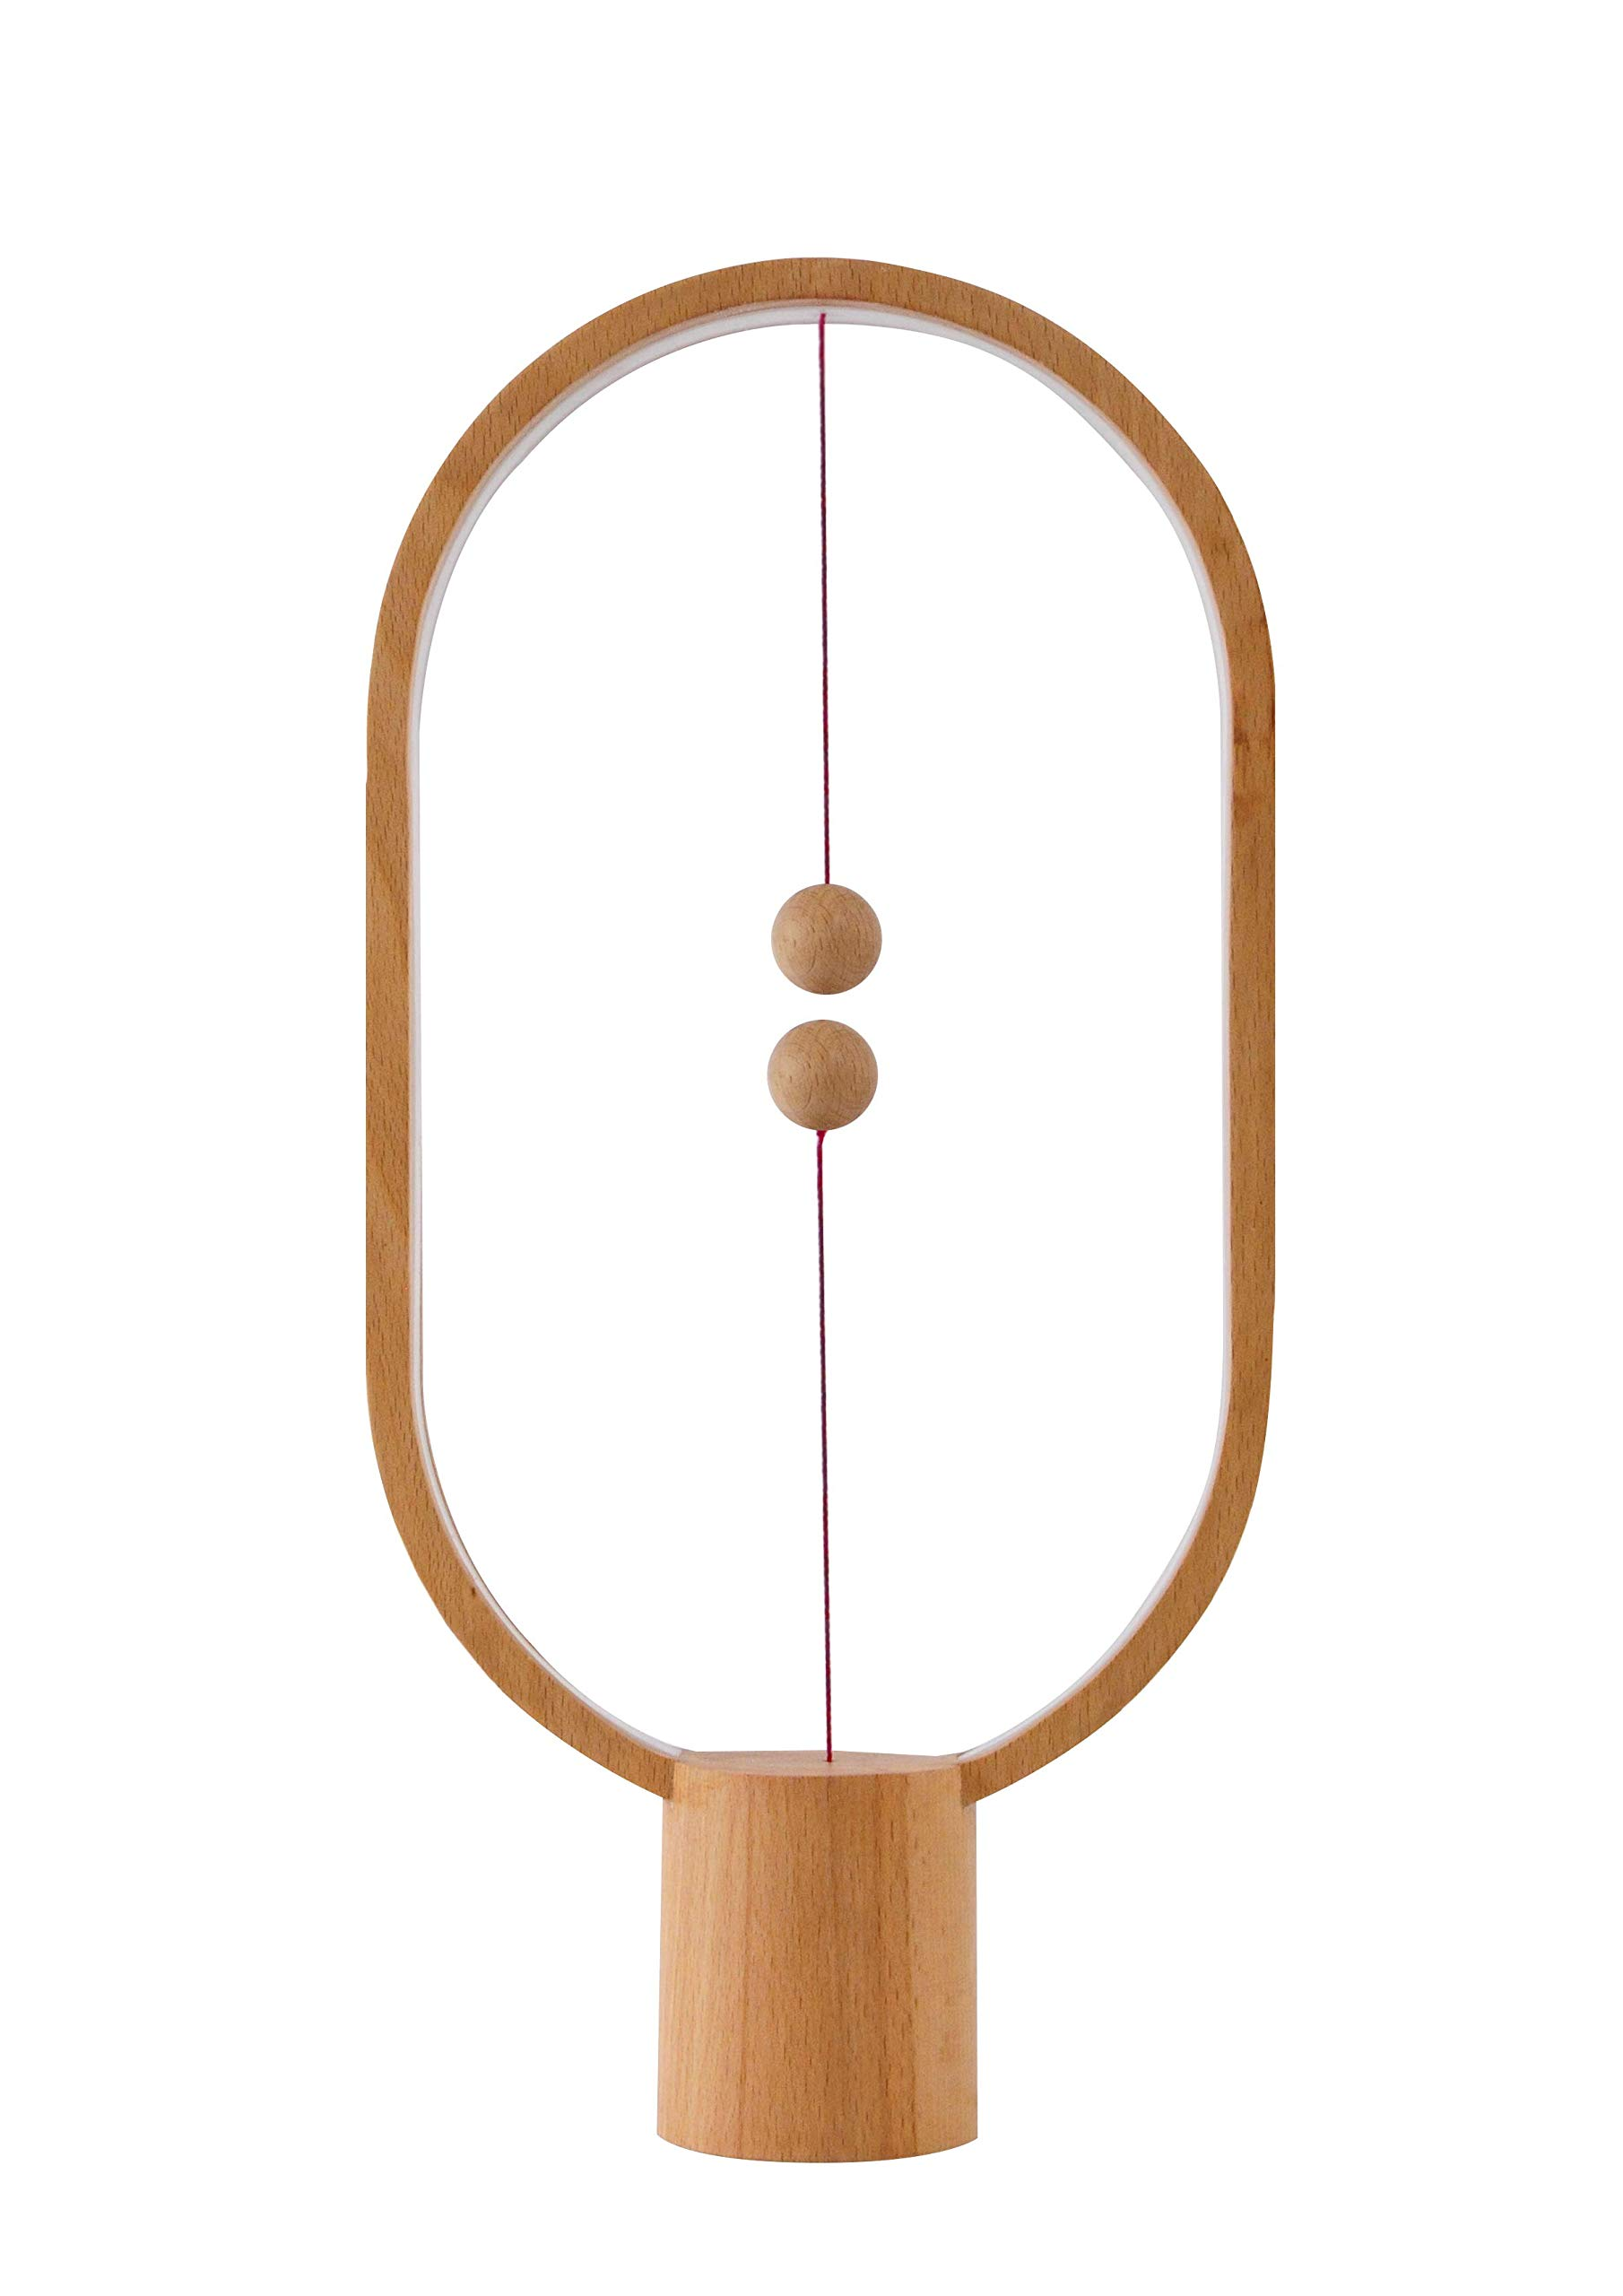 Heng Balance Lamp, Designer Table Lamp for Living Room, Bedroom and Office. Desk Lamp for Computer. Bedside Lamp for Nightstand. The Modern Ellipse Mood Lamp with Magnetic Switch in Air. (Wood)